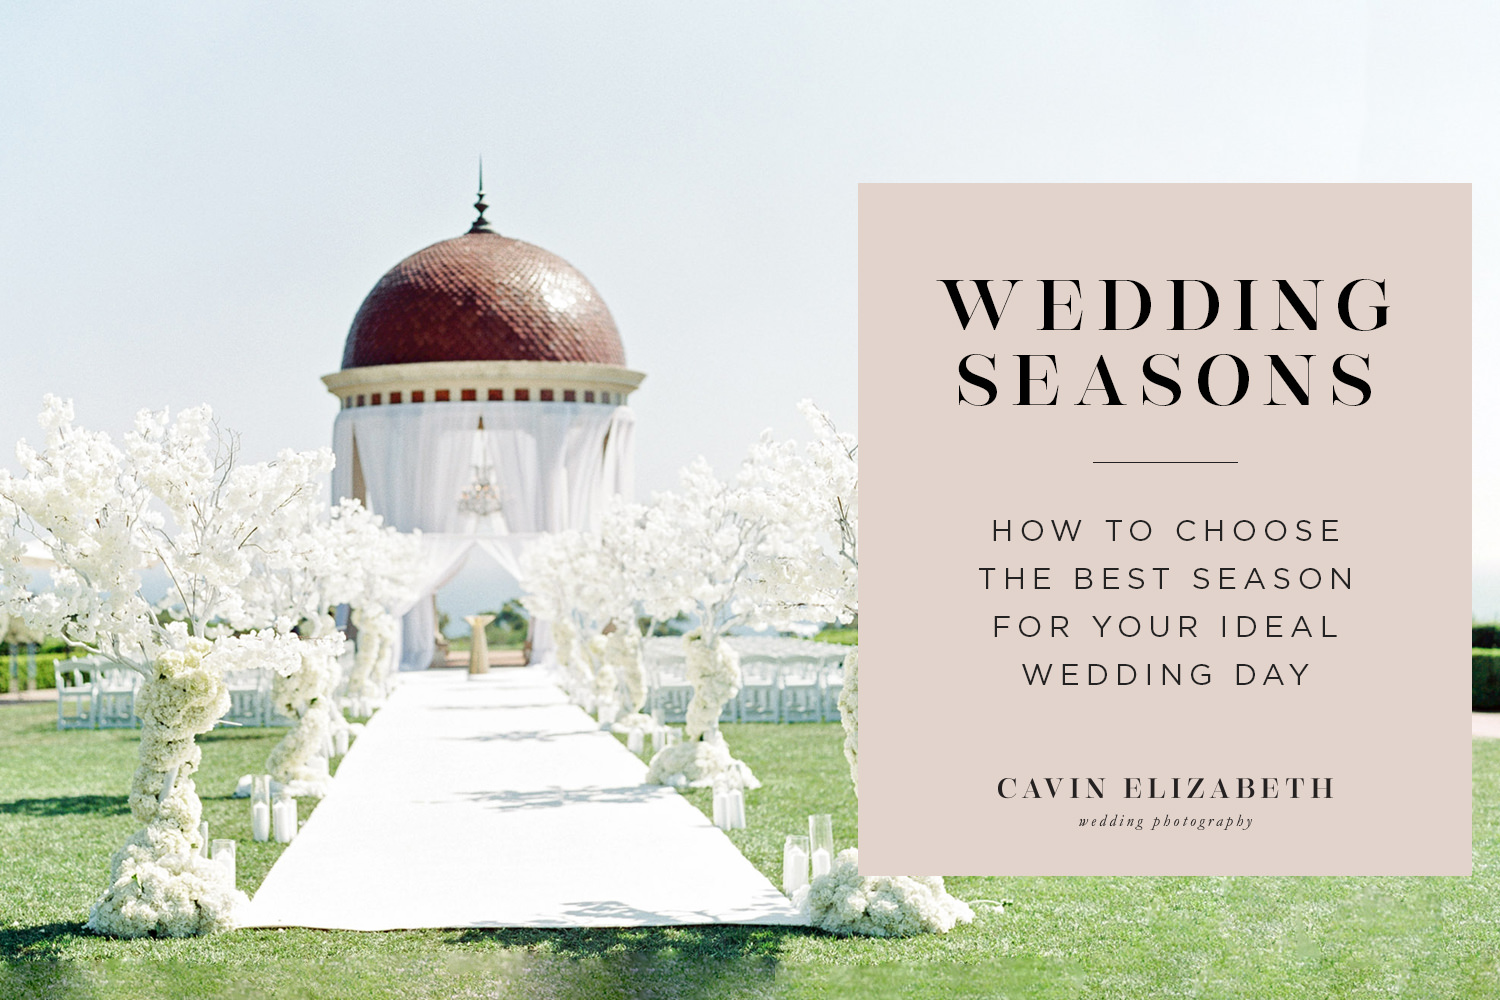 Choosing the Best Season for a Wedding | Wedding Weather, Lighting, and More